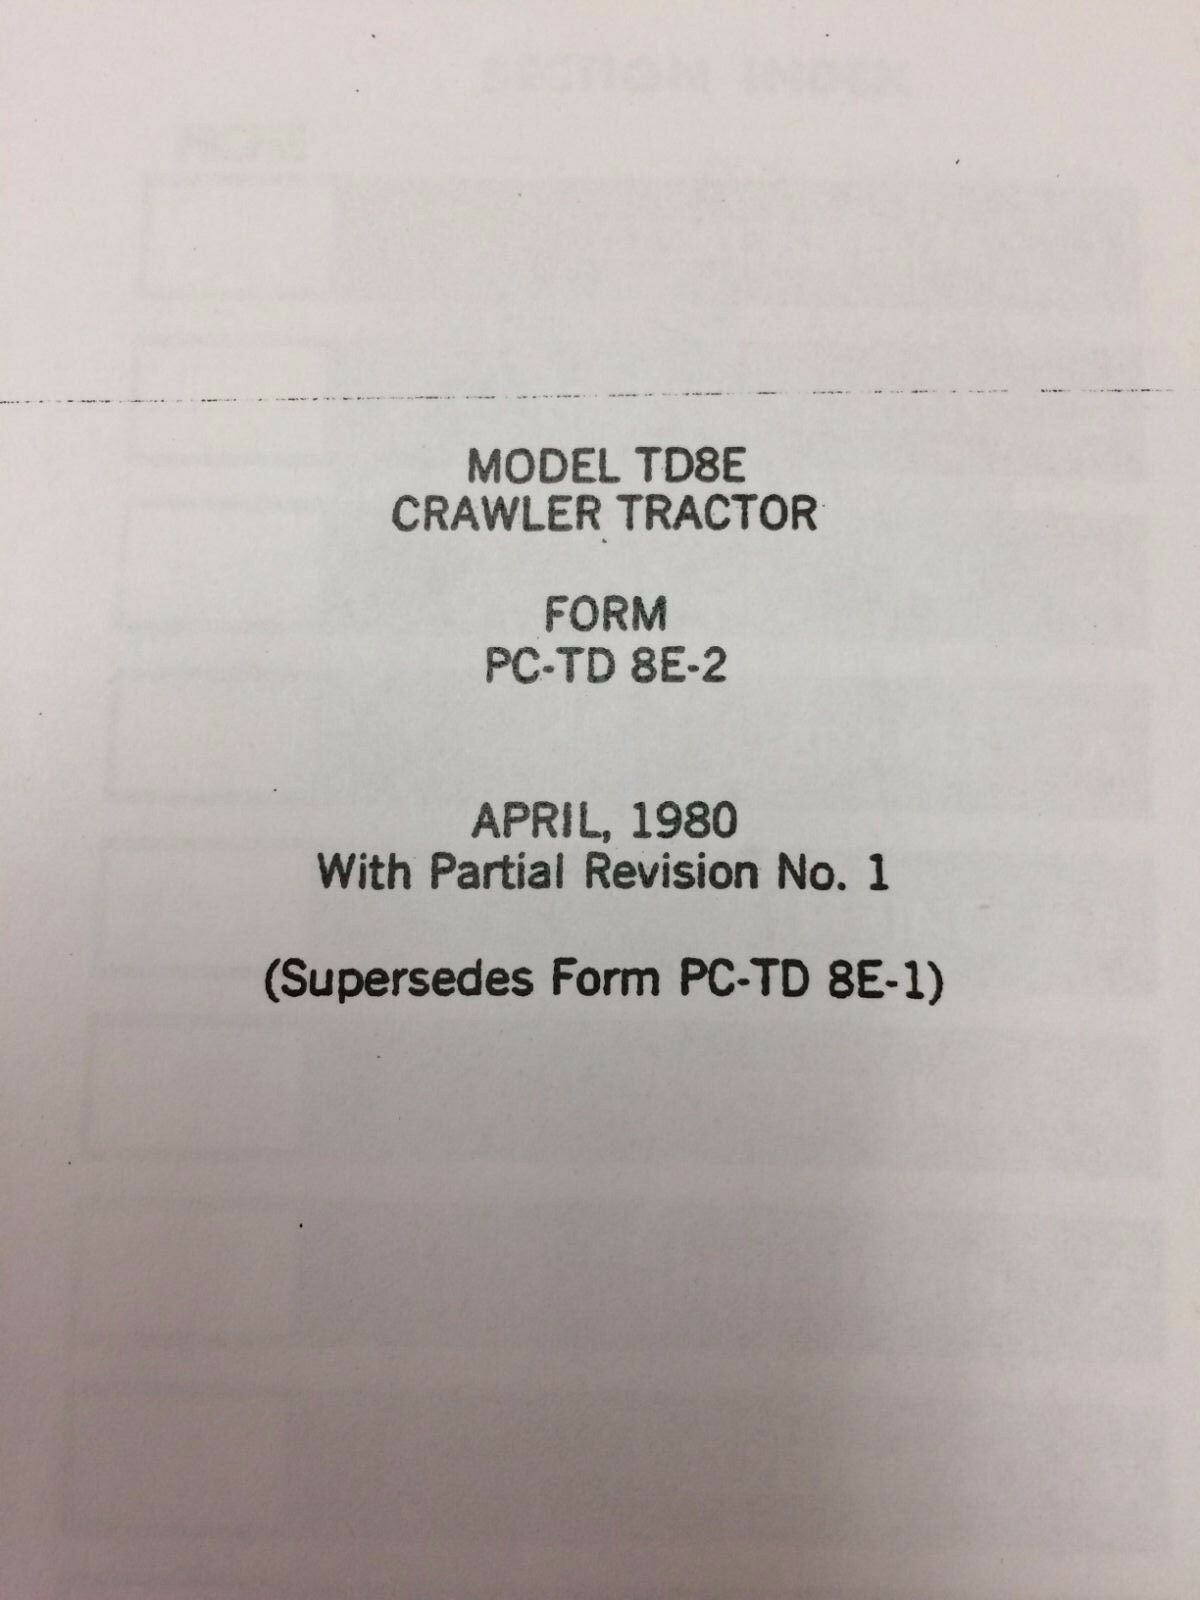 Dresser IH International Td8e Crawler Tractor Parts Book Manual Form  PCTD8E2 Lo | eBay